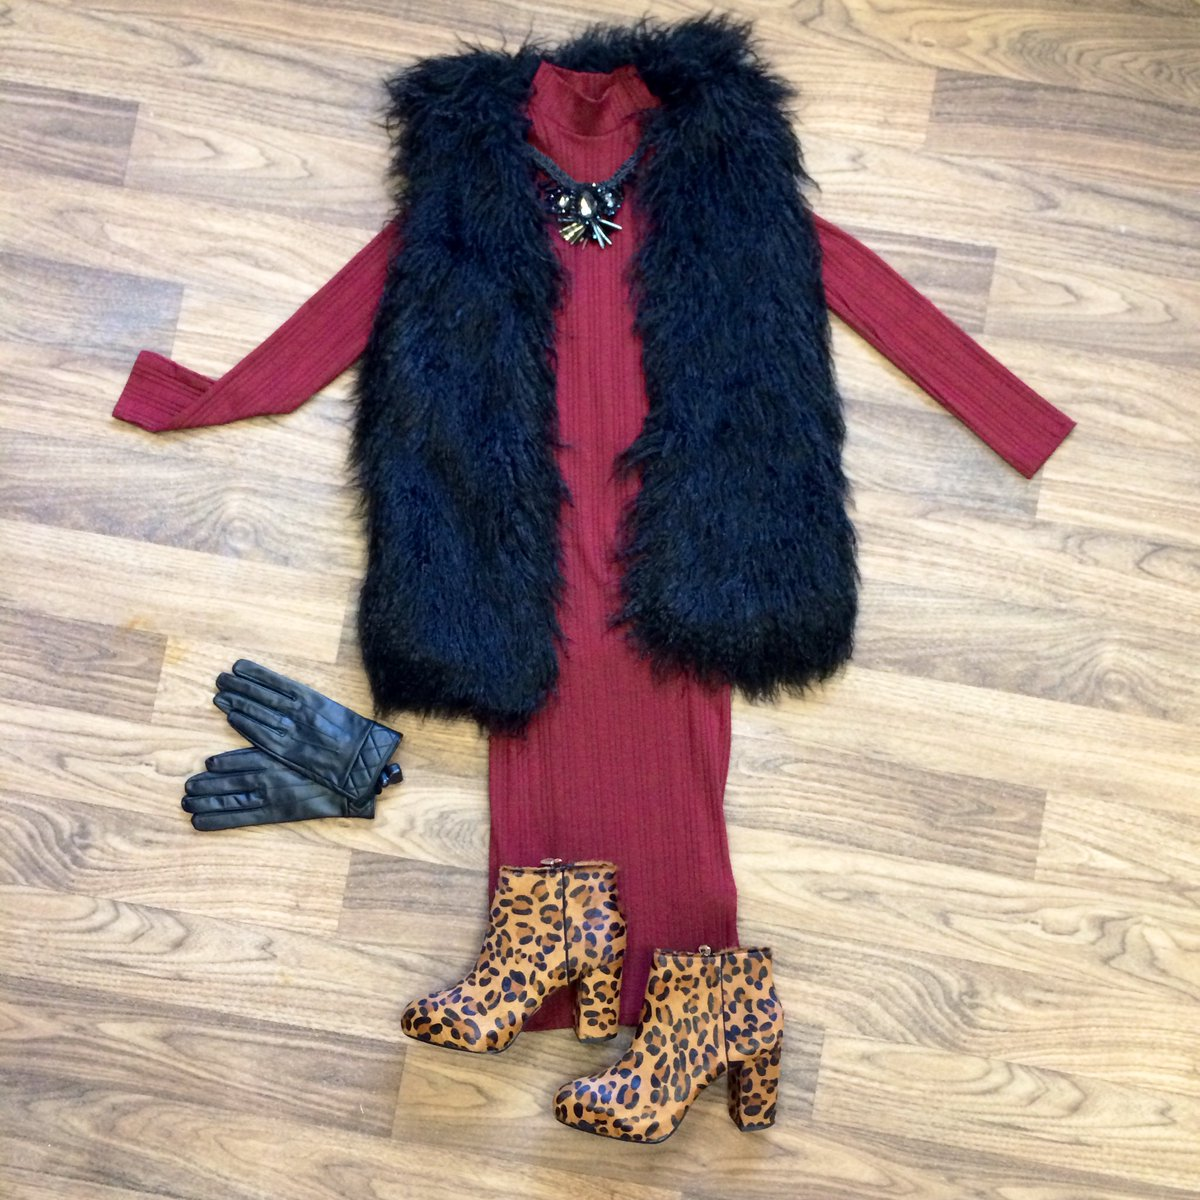 Today's outfit up for grabs! RT & follow @outfitfashionuk to #WIN #Outfit7Days #XmasOutfit https://t.co/qiRS9dybAl https://t.co/7T0t795oK8